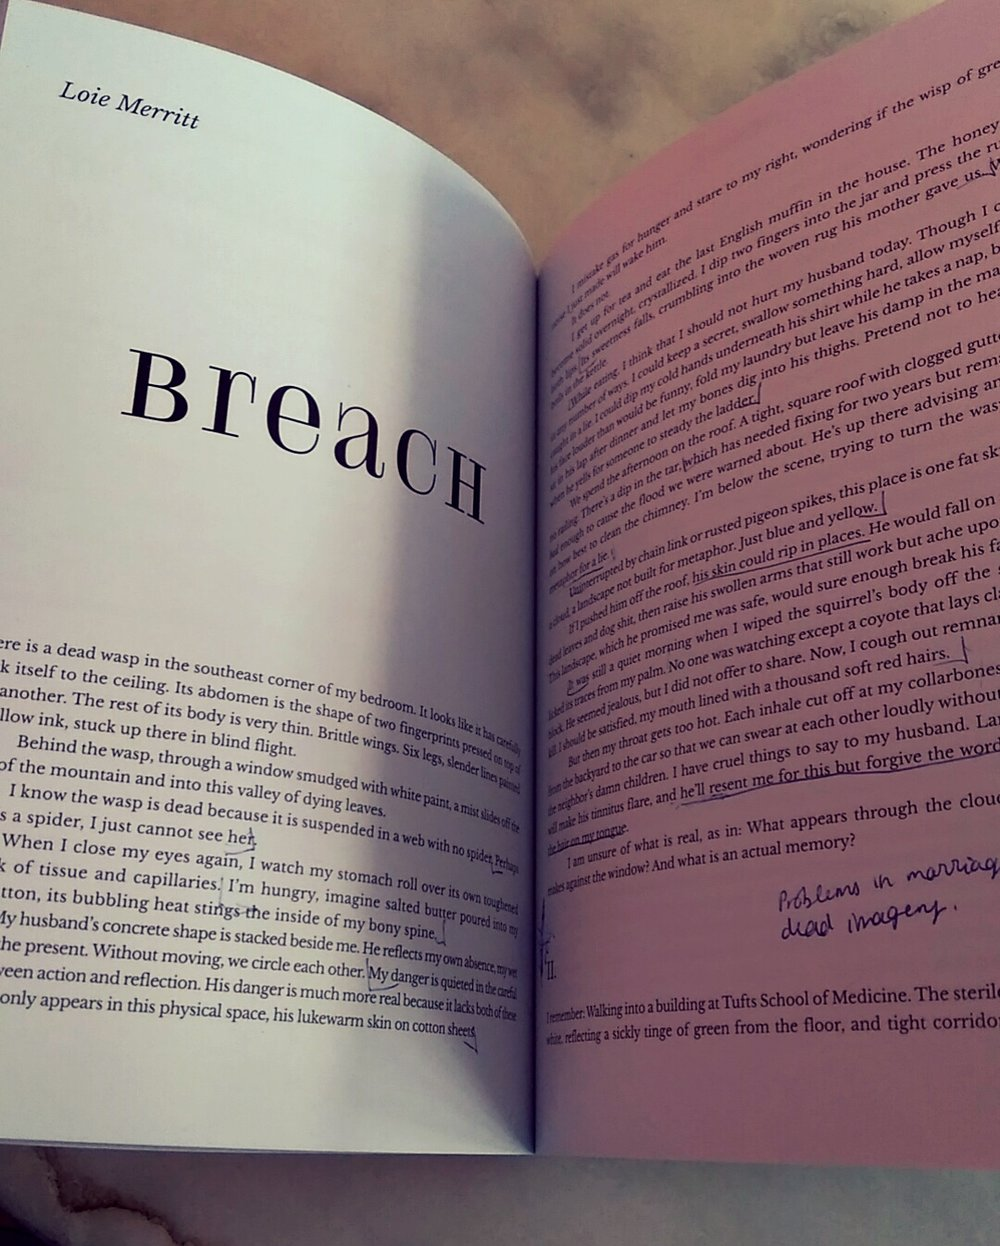 Breach   by Loie Merritt